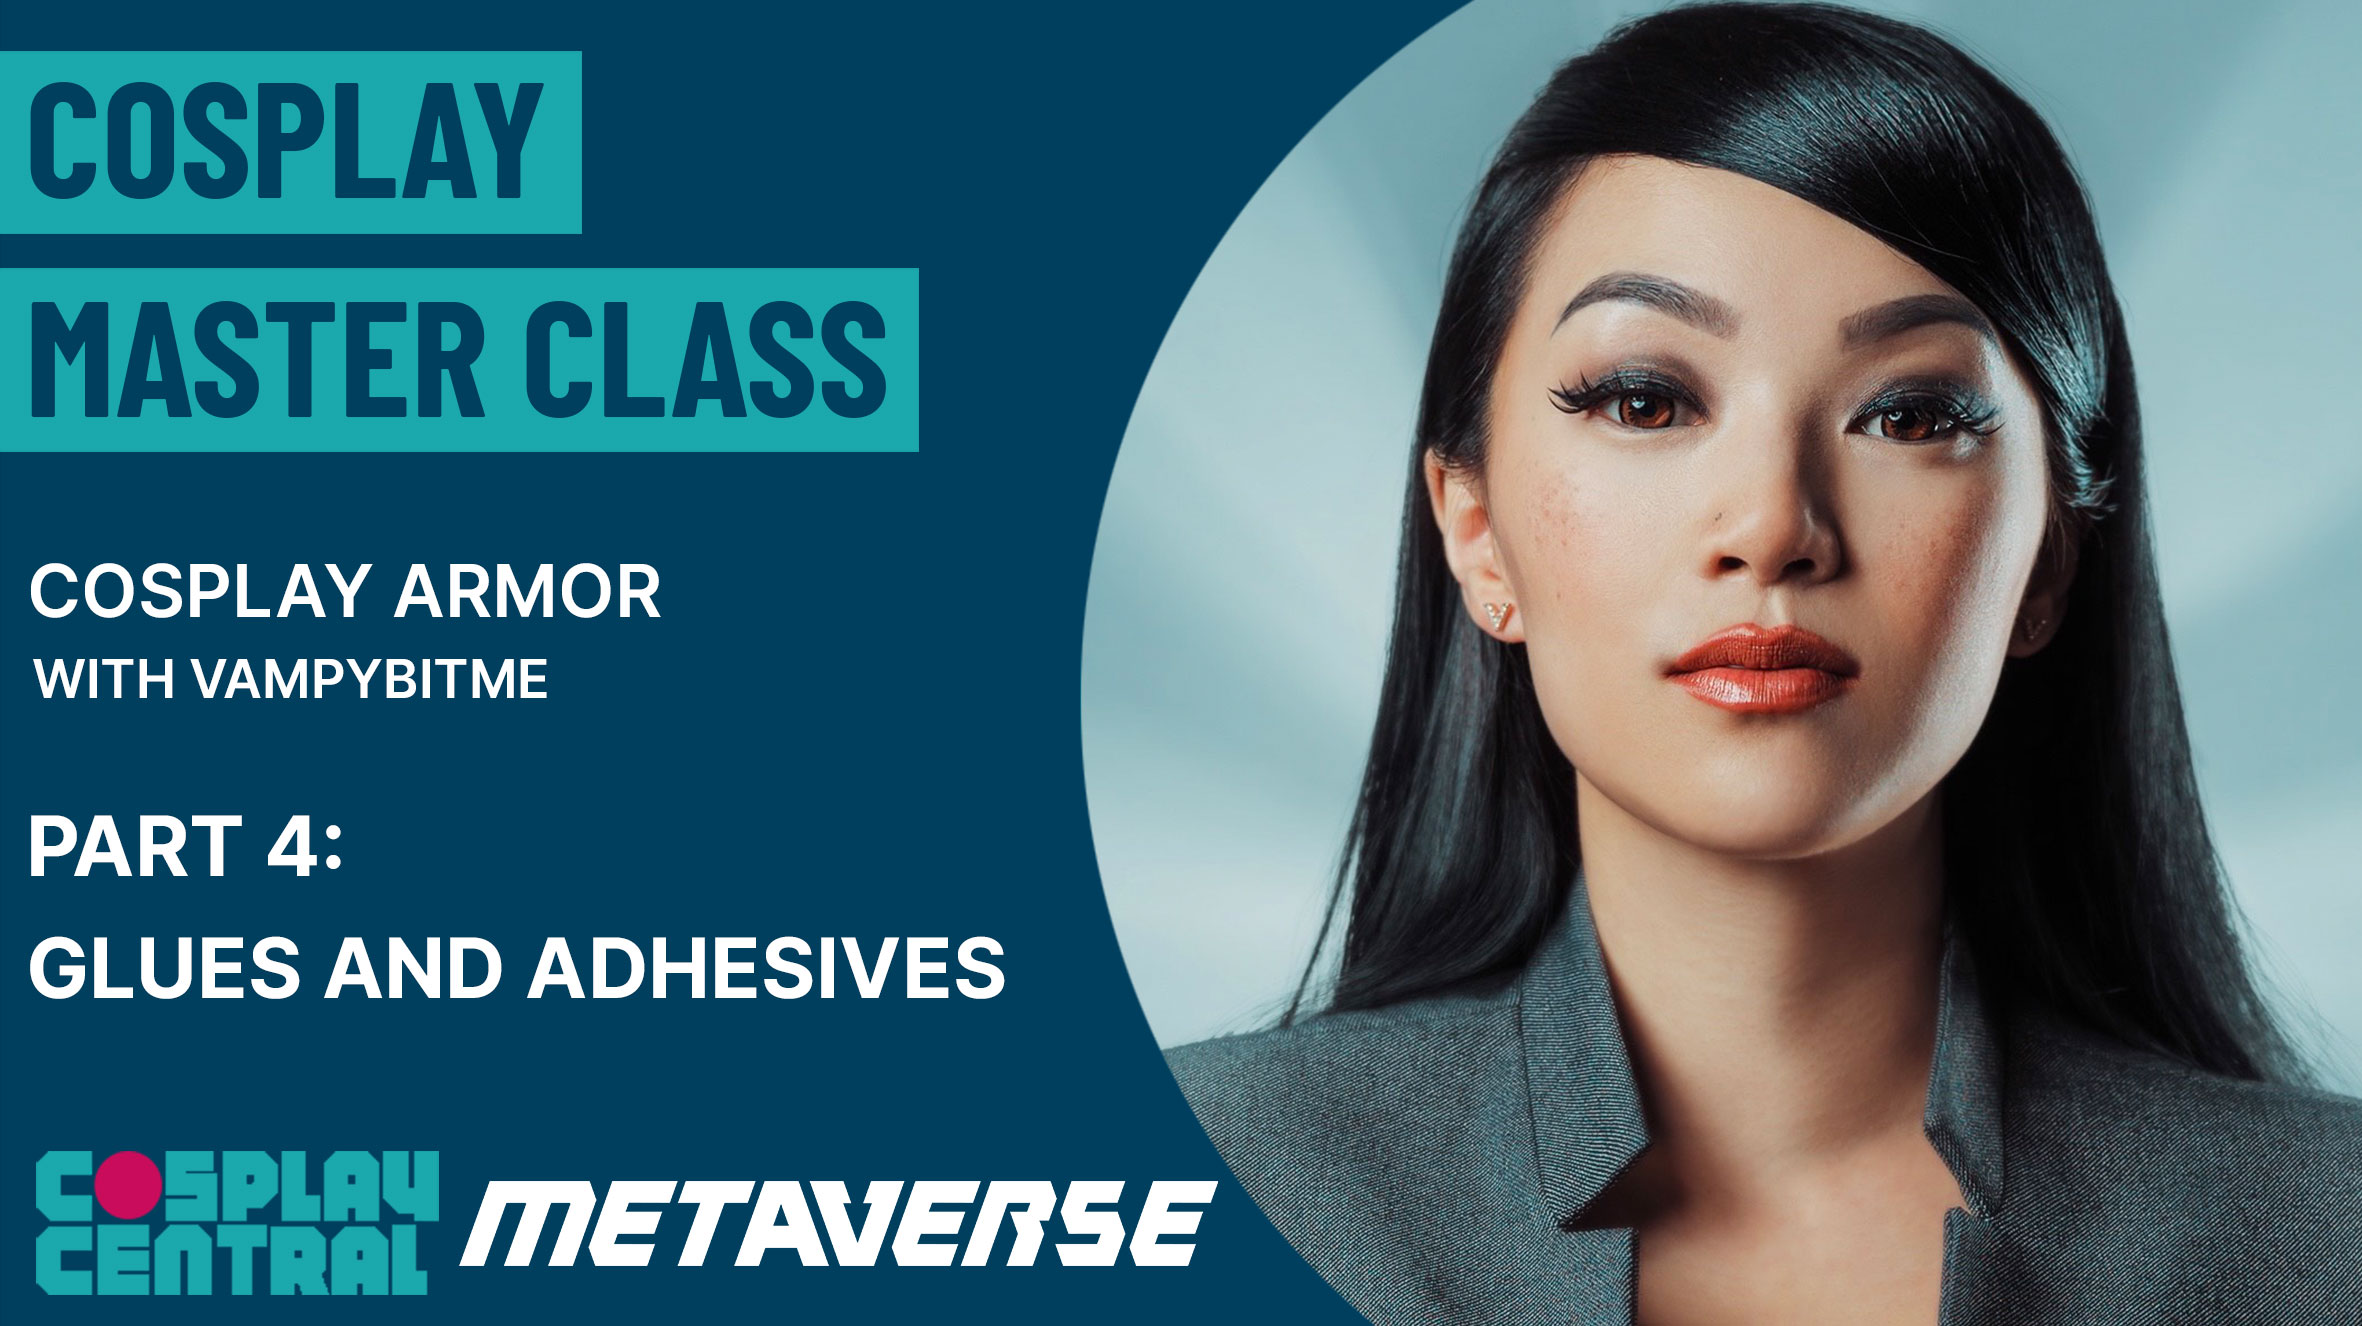 Image for Cosplay Master Class | Armor with VampyBitMe - Part 4 Glues and Adhesives